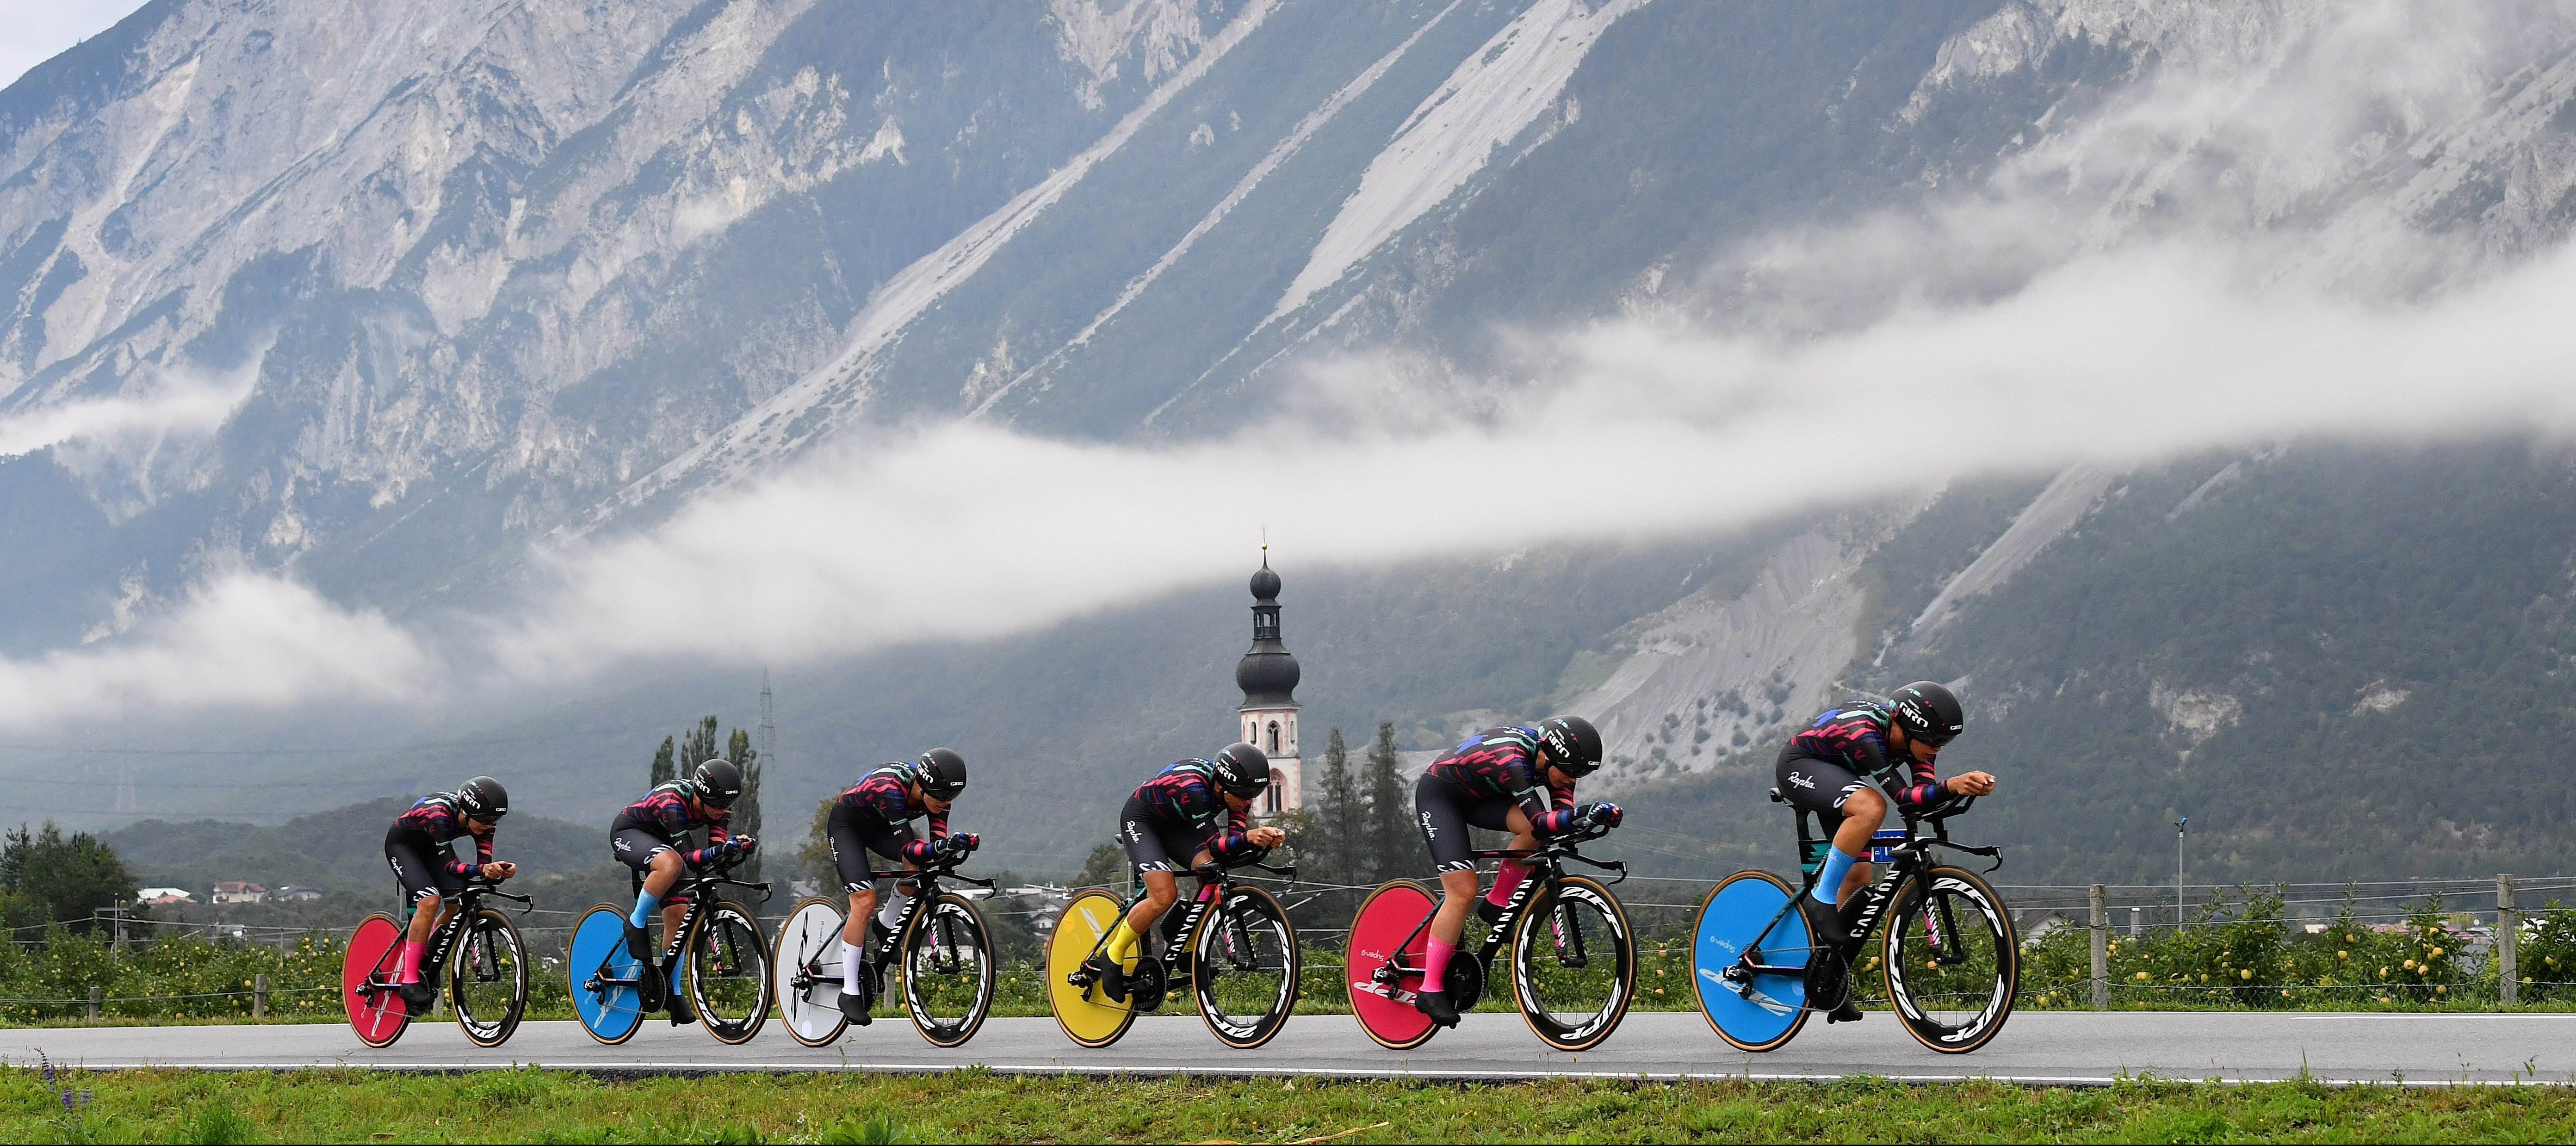 09029cc91 Canyon-SRAM win UCI Road World Championships women s team time trial - Cycling  Weekly